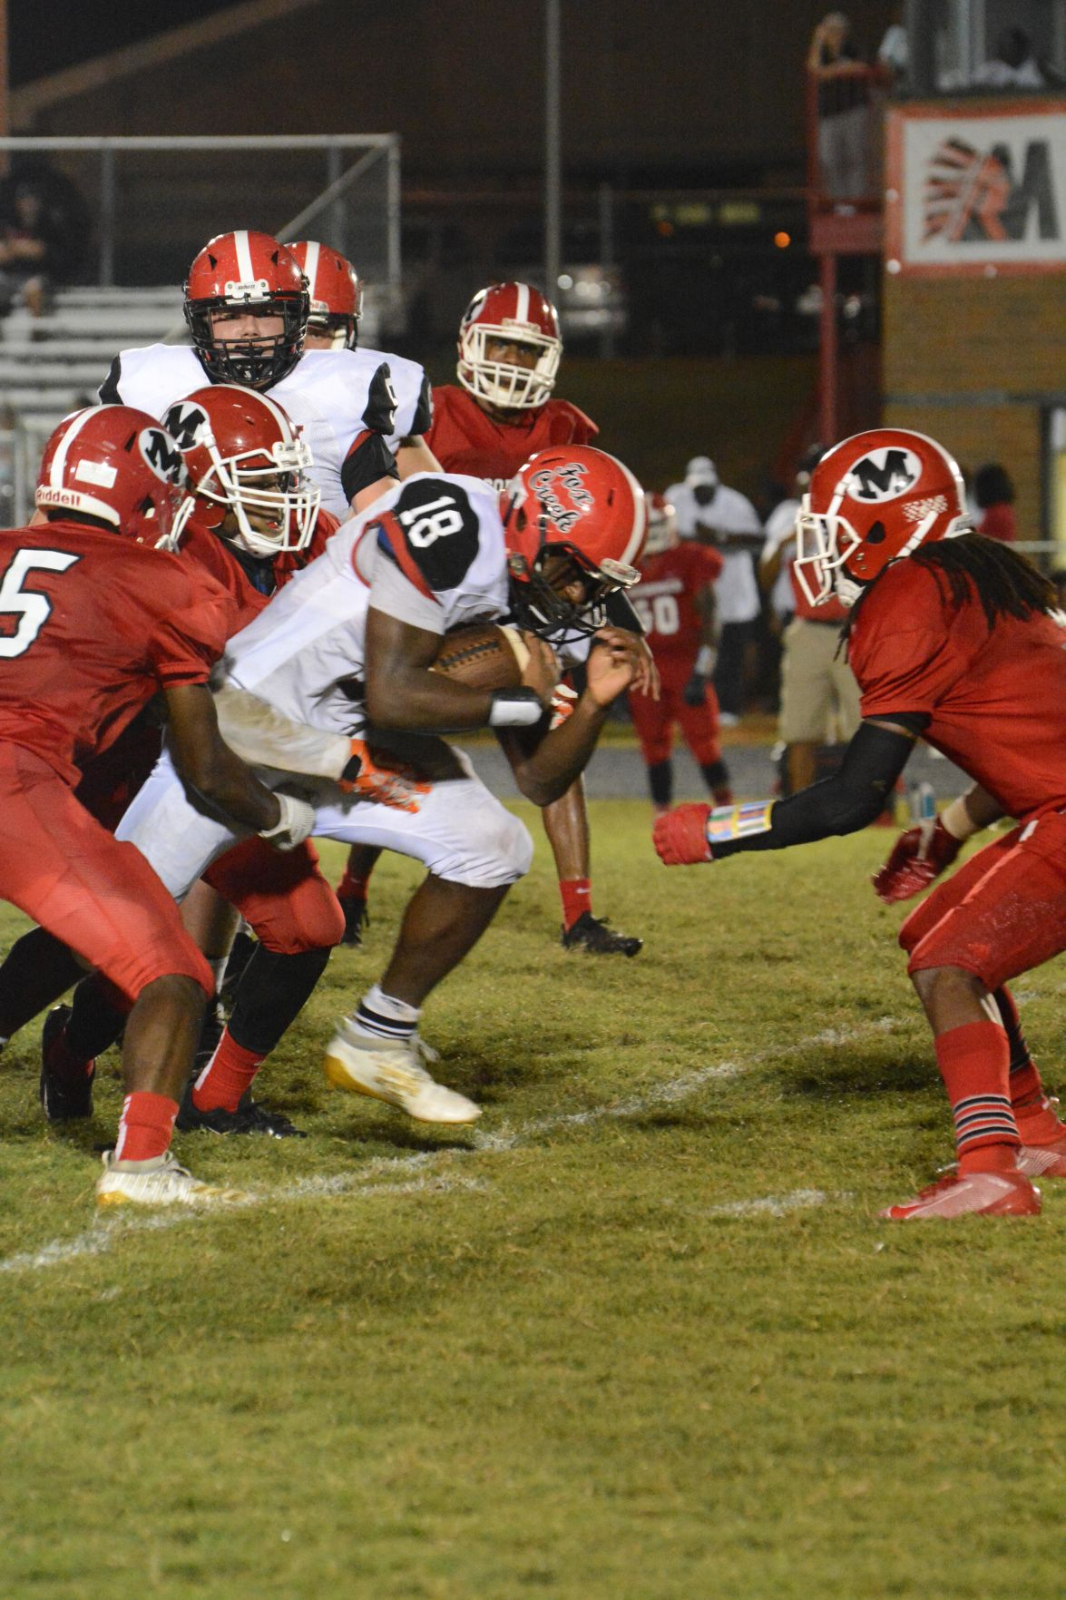 Varsity Football Highlights/Articles From Wins over McCormick, Columbia, Crescent, and Ninety Six